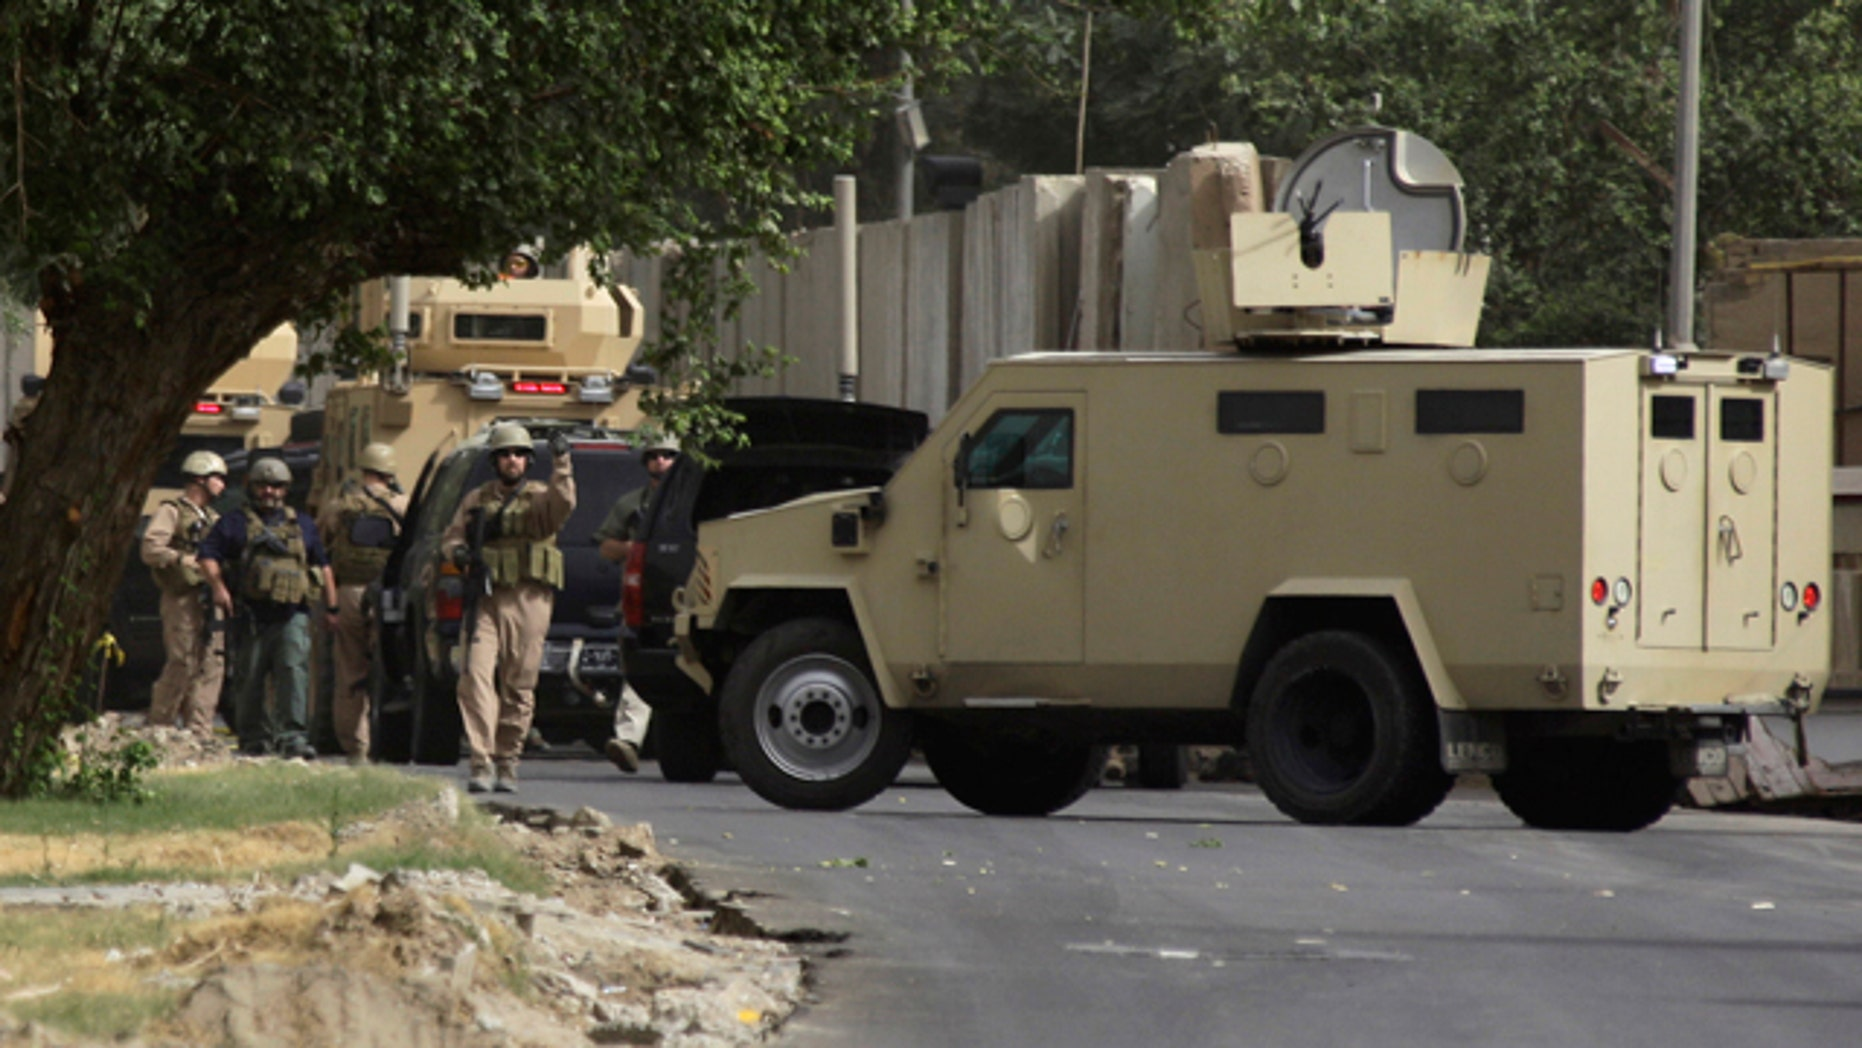 June 6: Security contractors inspect their armored vehicles after a roadside bomb attack in Baghdad, Iraq.